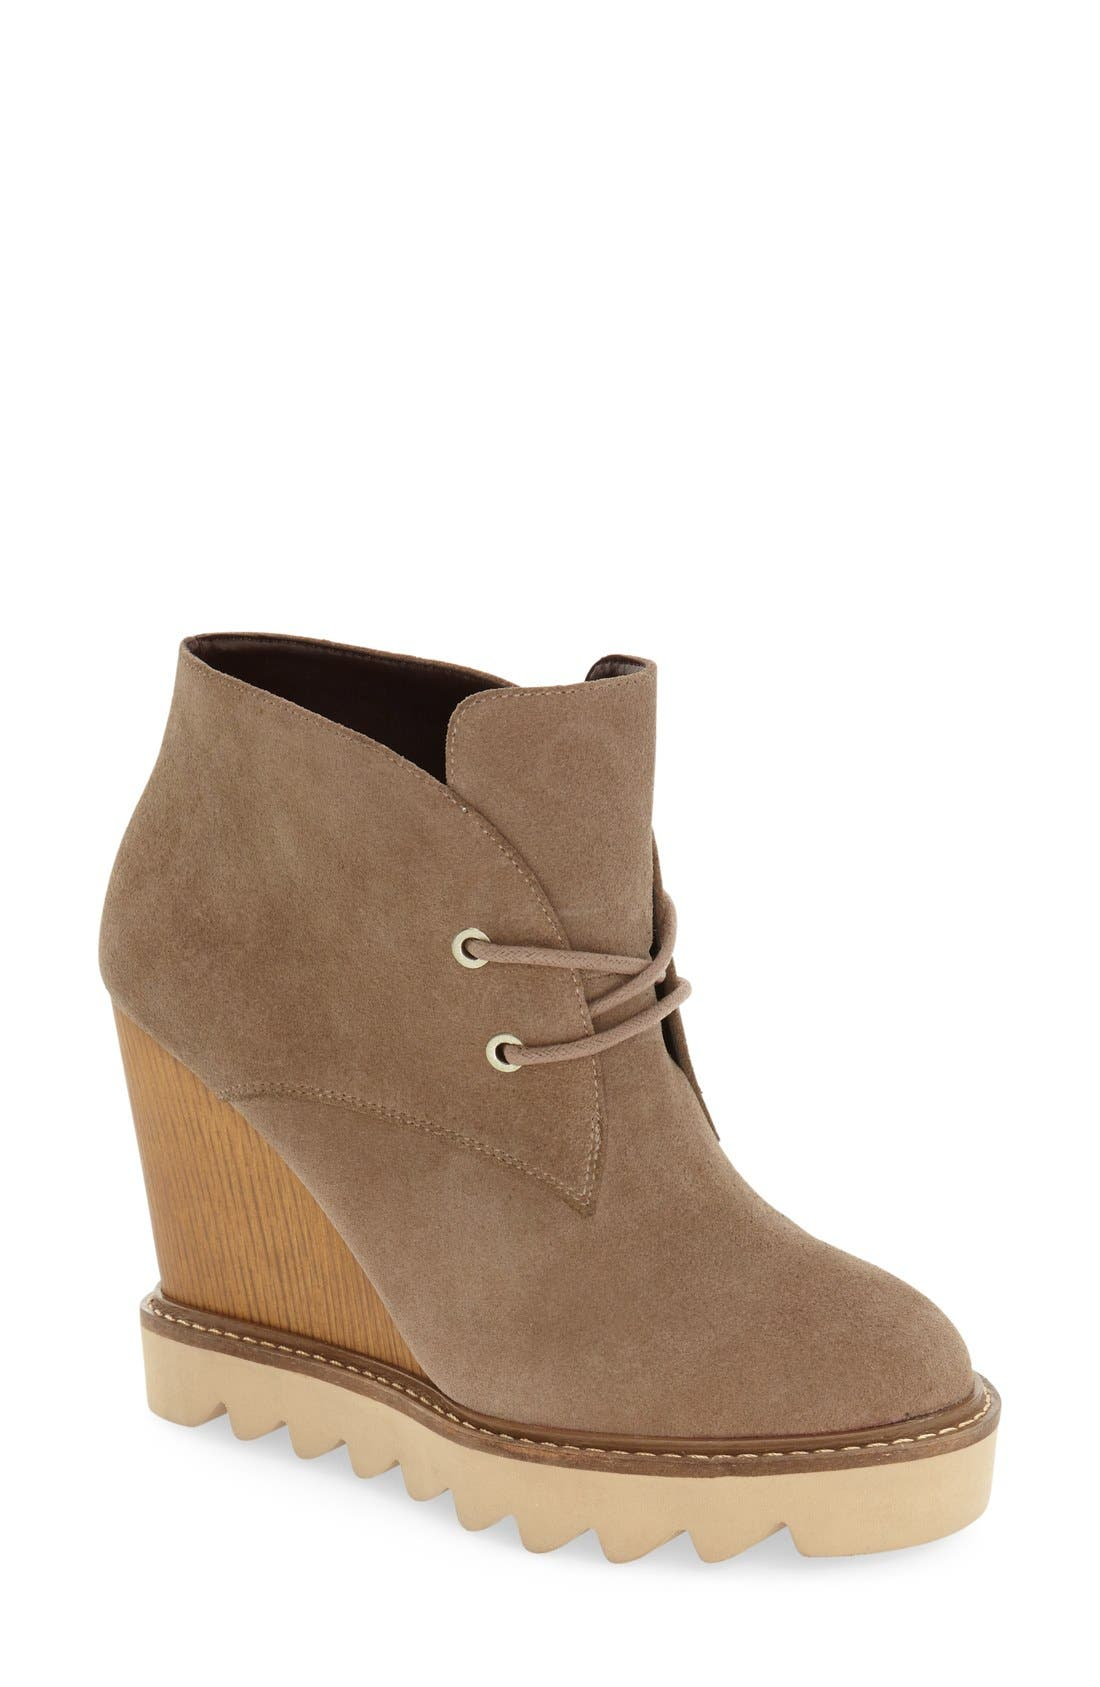 Alternate Image 1 Selected - BCBGeneration 'Nariska' Wedge Bootie (Women)